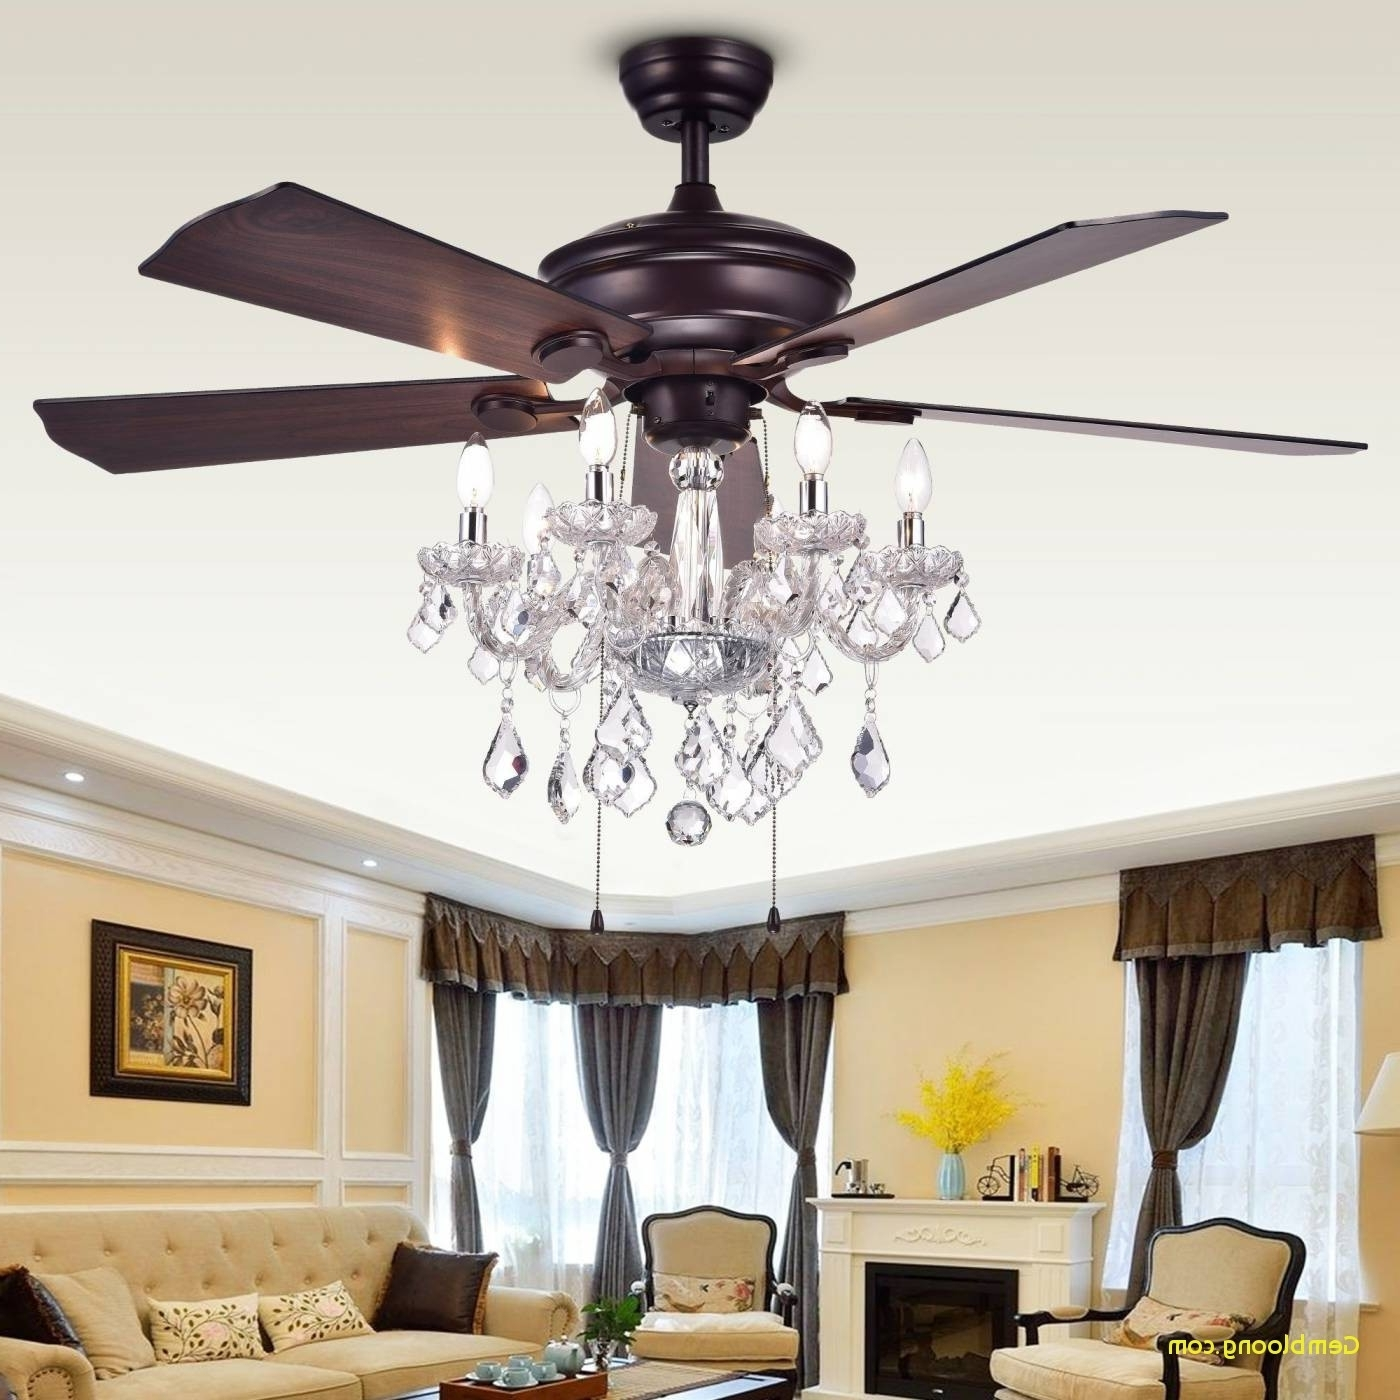 Casa Vieja Ceiling Fans Elegant 40 New Chandelier Ceiling Fan Intended For 2019 Casa Vieja Outdoor Ceiling Fans (View 16 of 20)